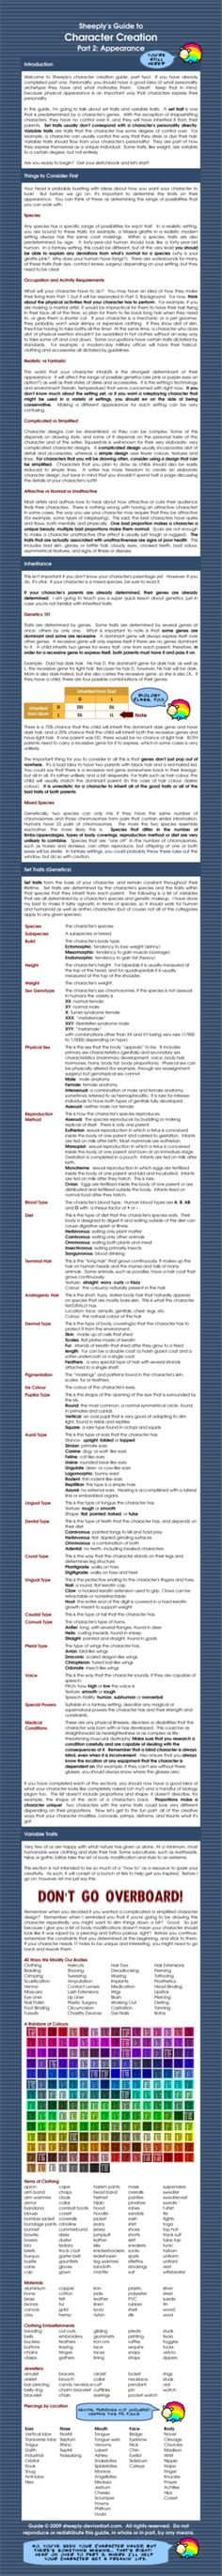 Character Creation Guide Pt 2 by ~Sheeply on deviantART